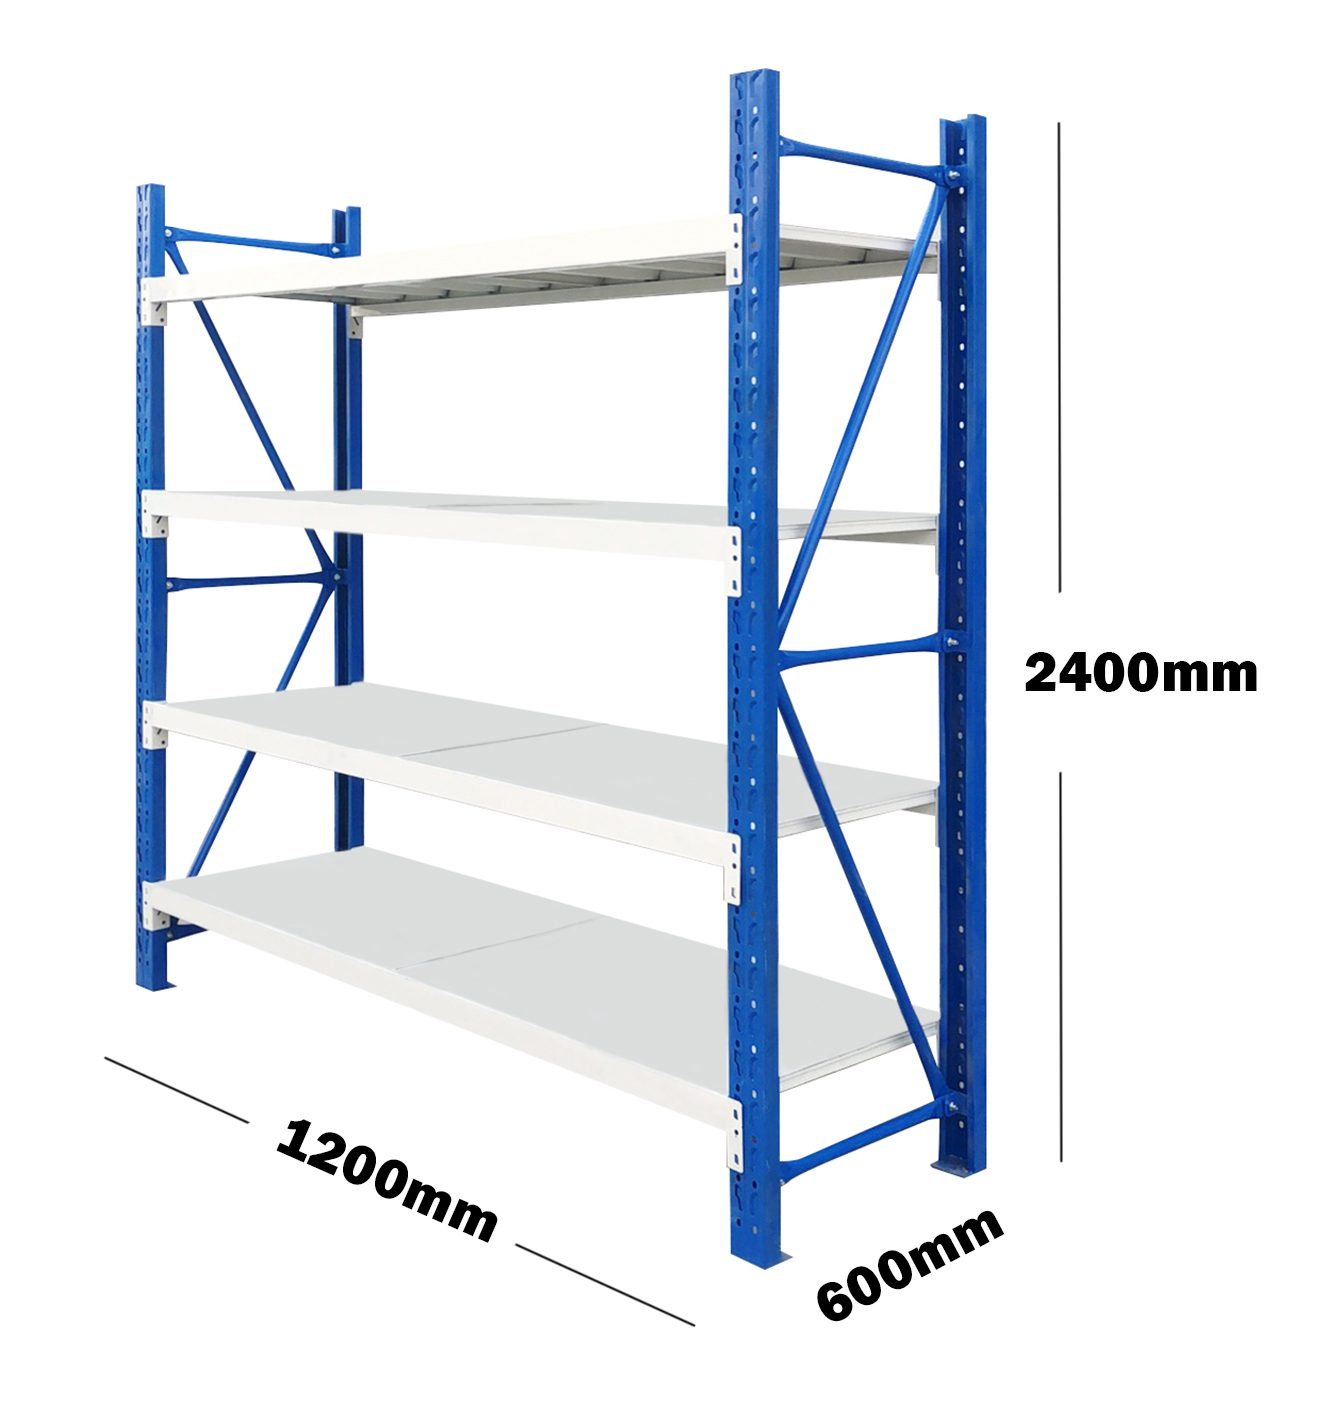 1.2M(L) x 2.4M(H) x 0.6M(D) Shelves Racking Metal Steel Blue & Grey 1224BG